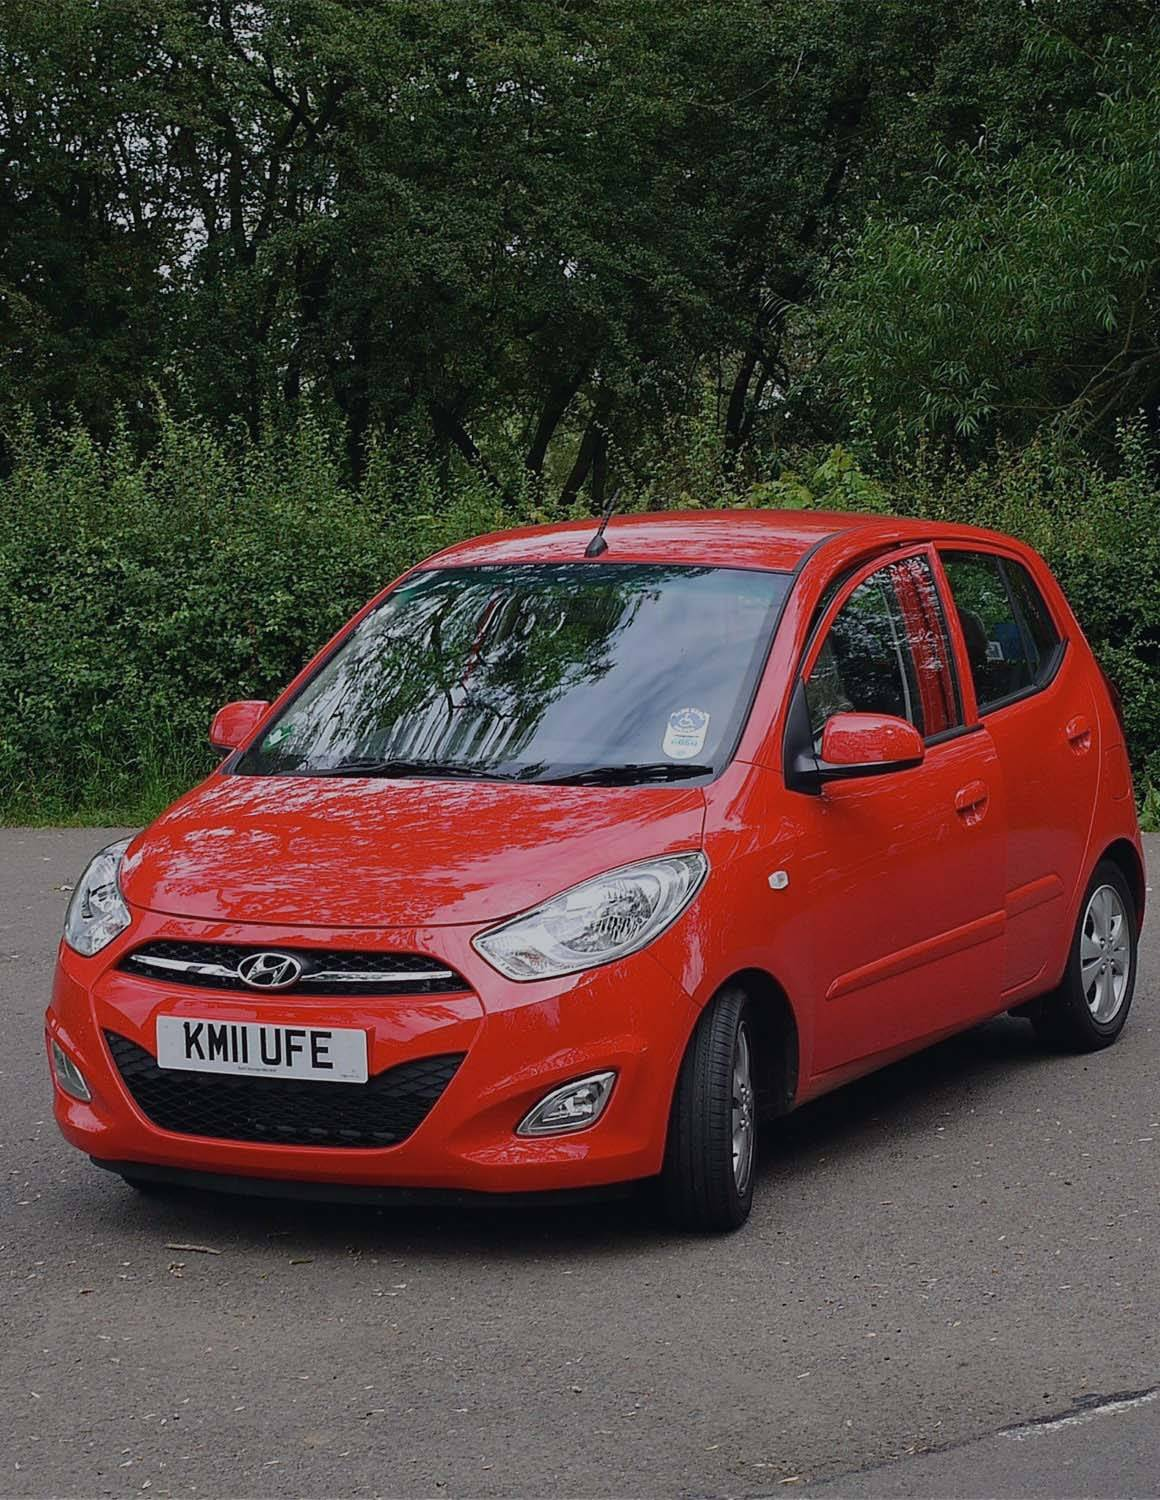 Get the best car finance for your Hyundai today